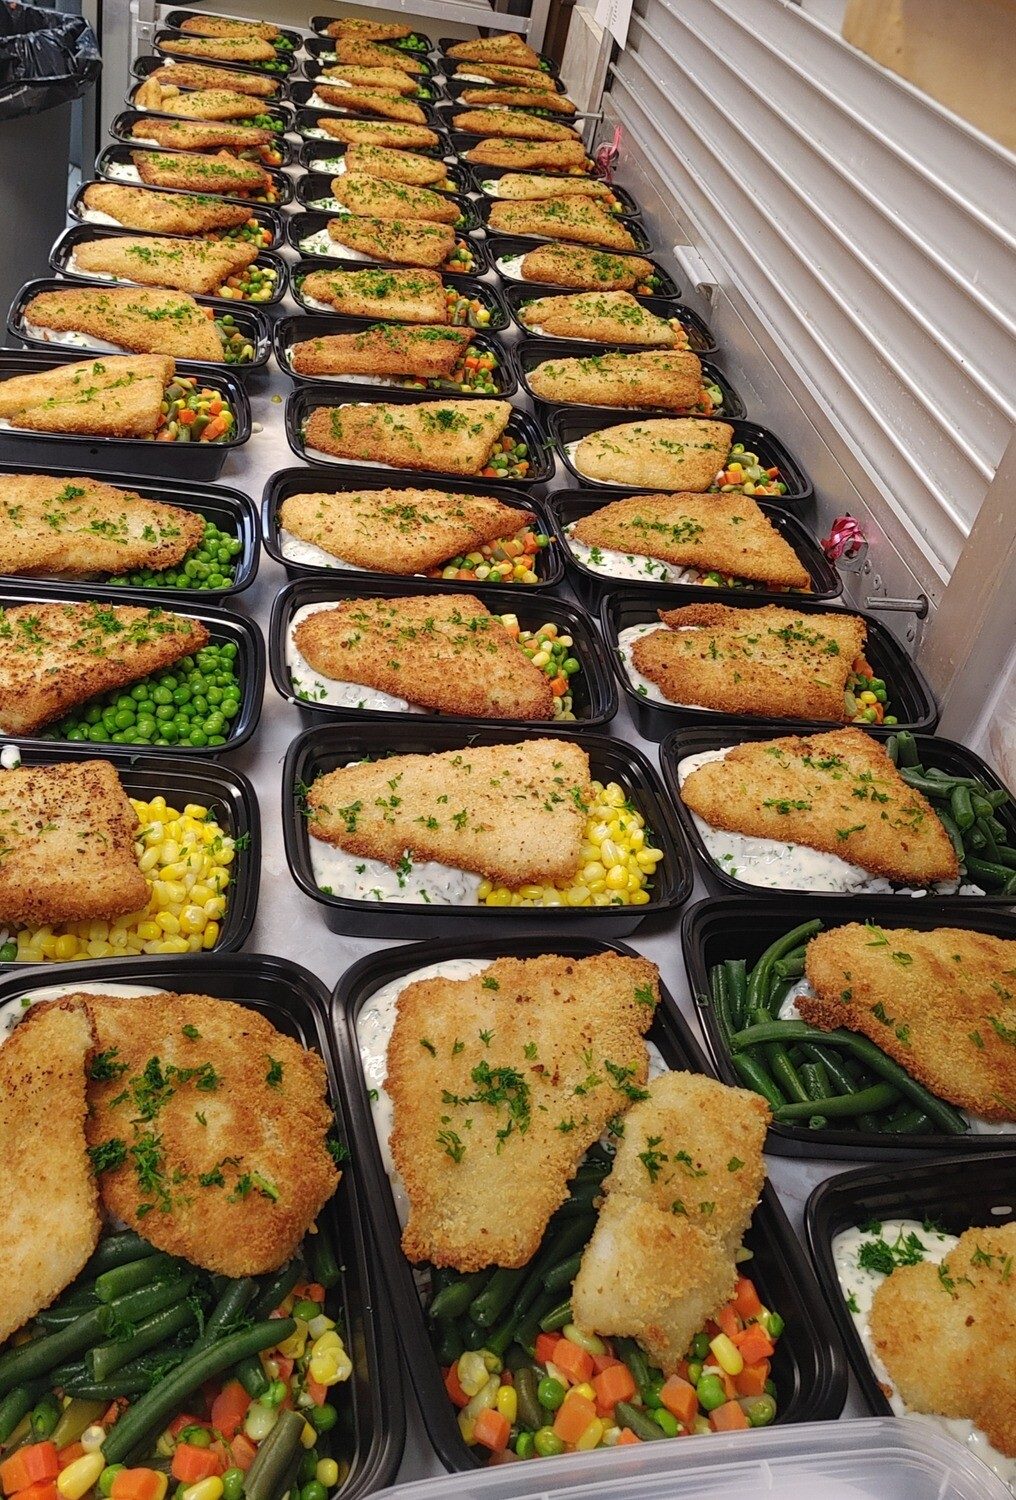 Breaded Basa Fillet with Rice Medley, Vegetables & Parsley Sauce